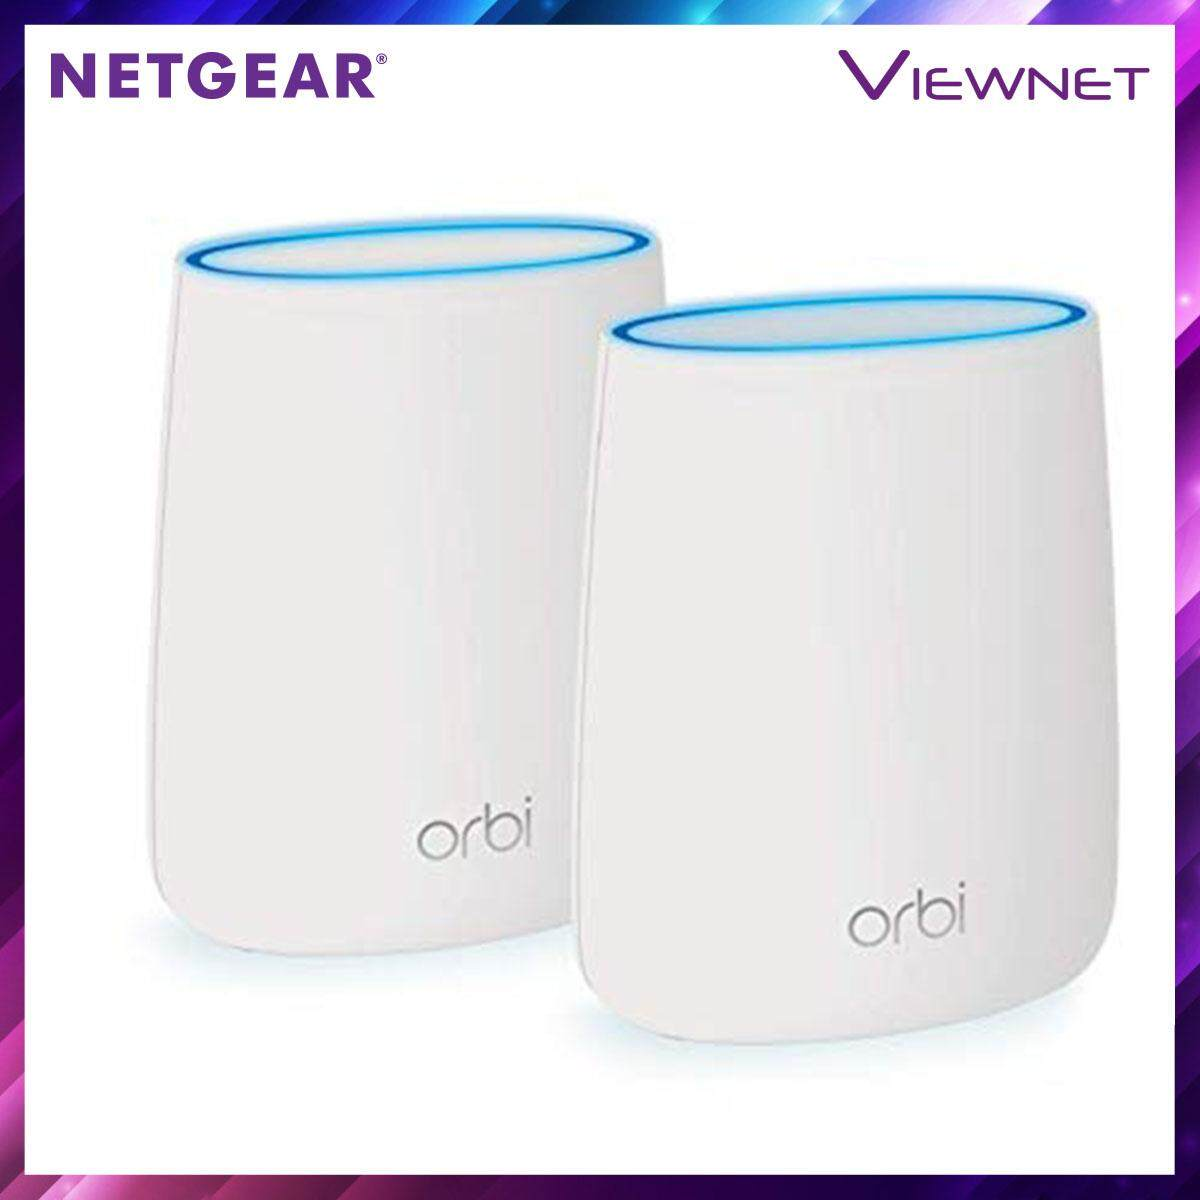 Netgear Orbi RBK20 AC2200 Whole Home Tri-band Mesh WiFi System